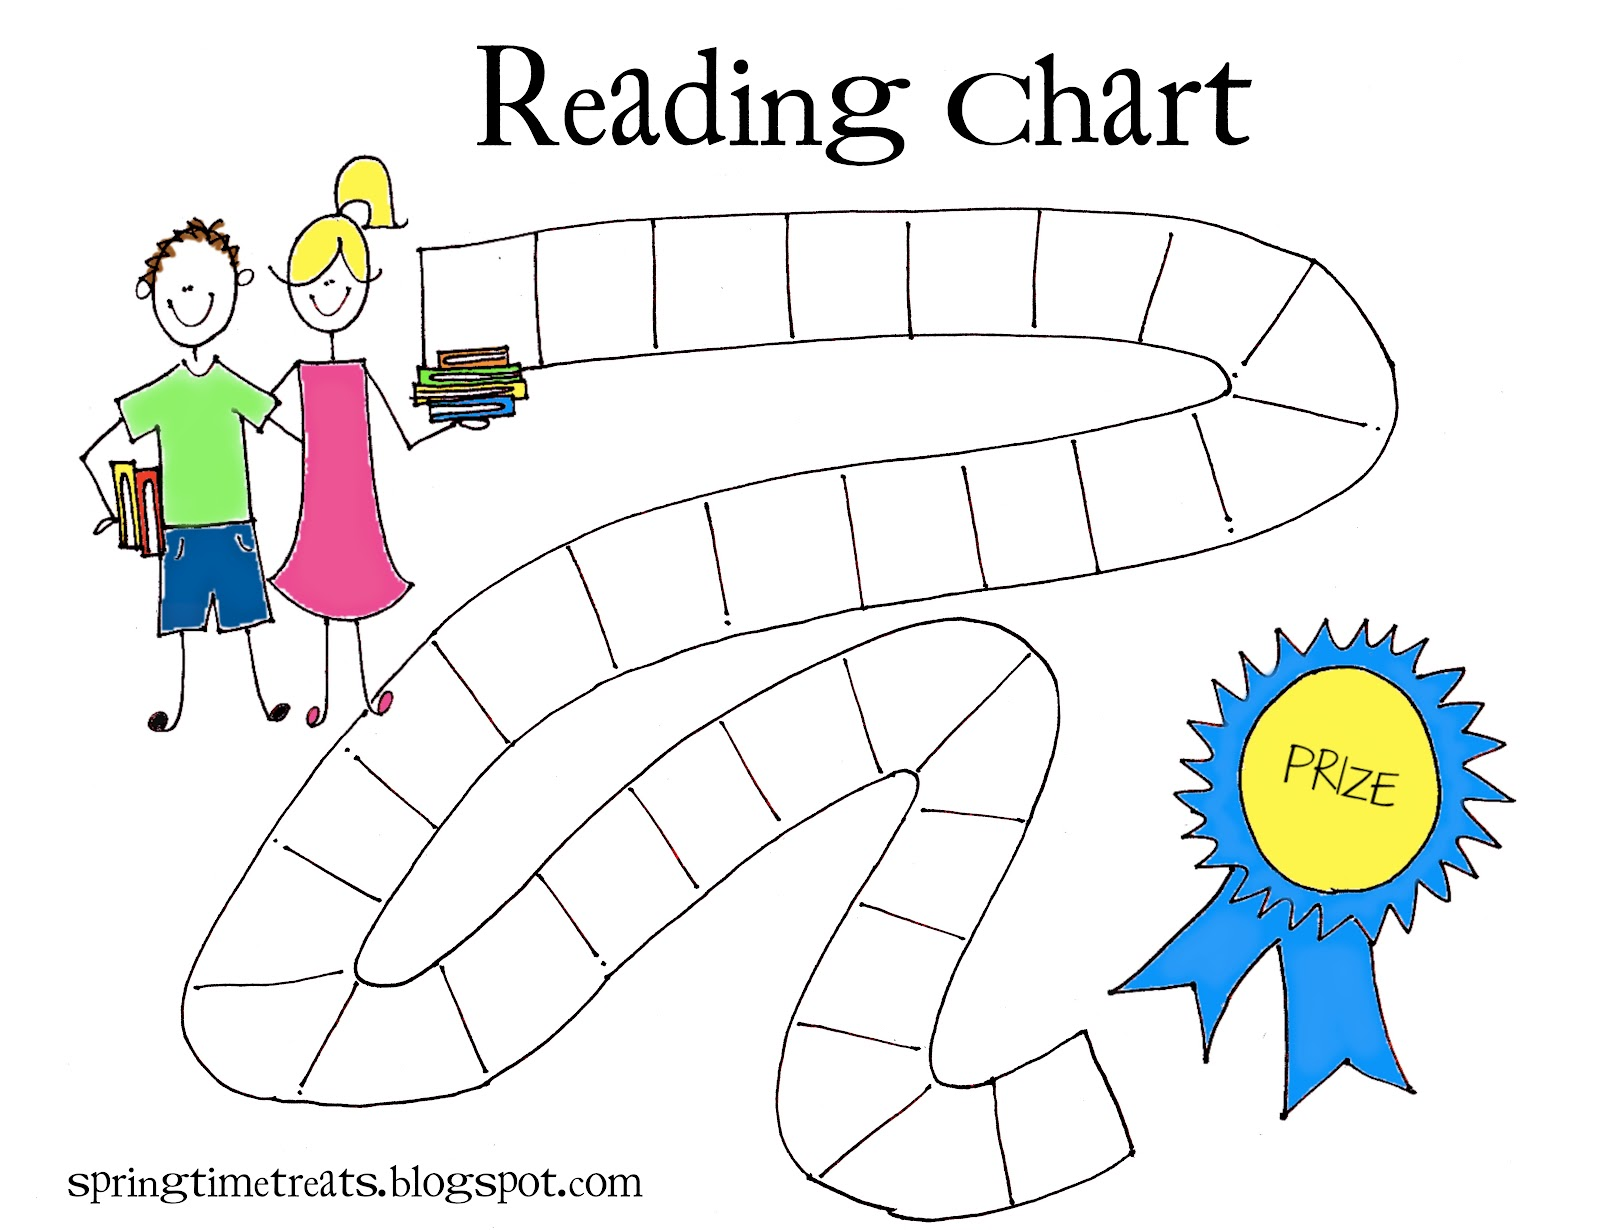 Spring Time Treats: Reading Chart - free printable